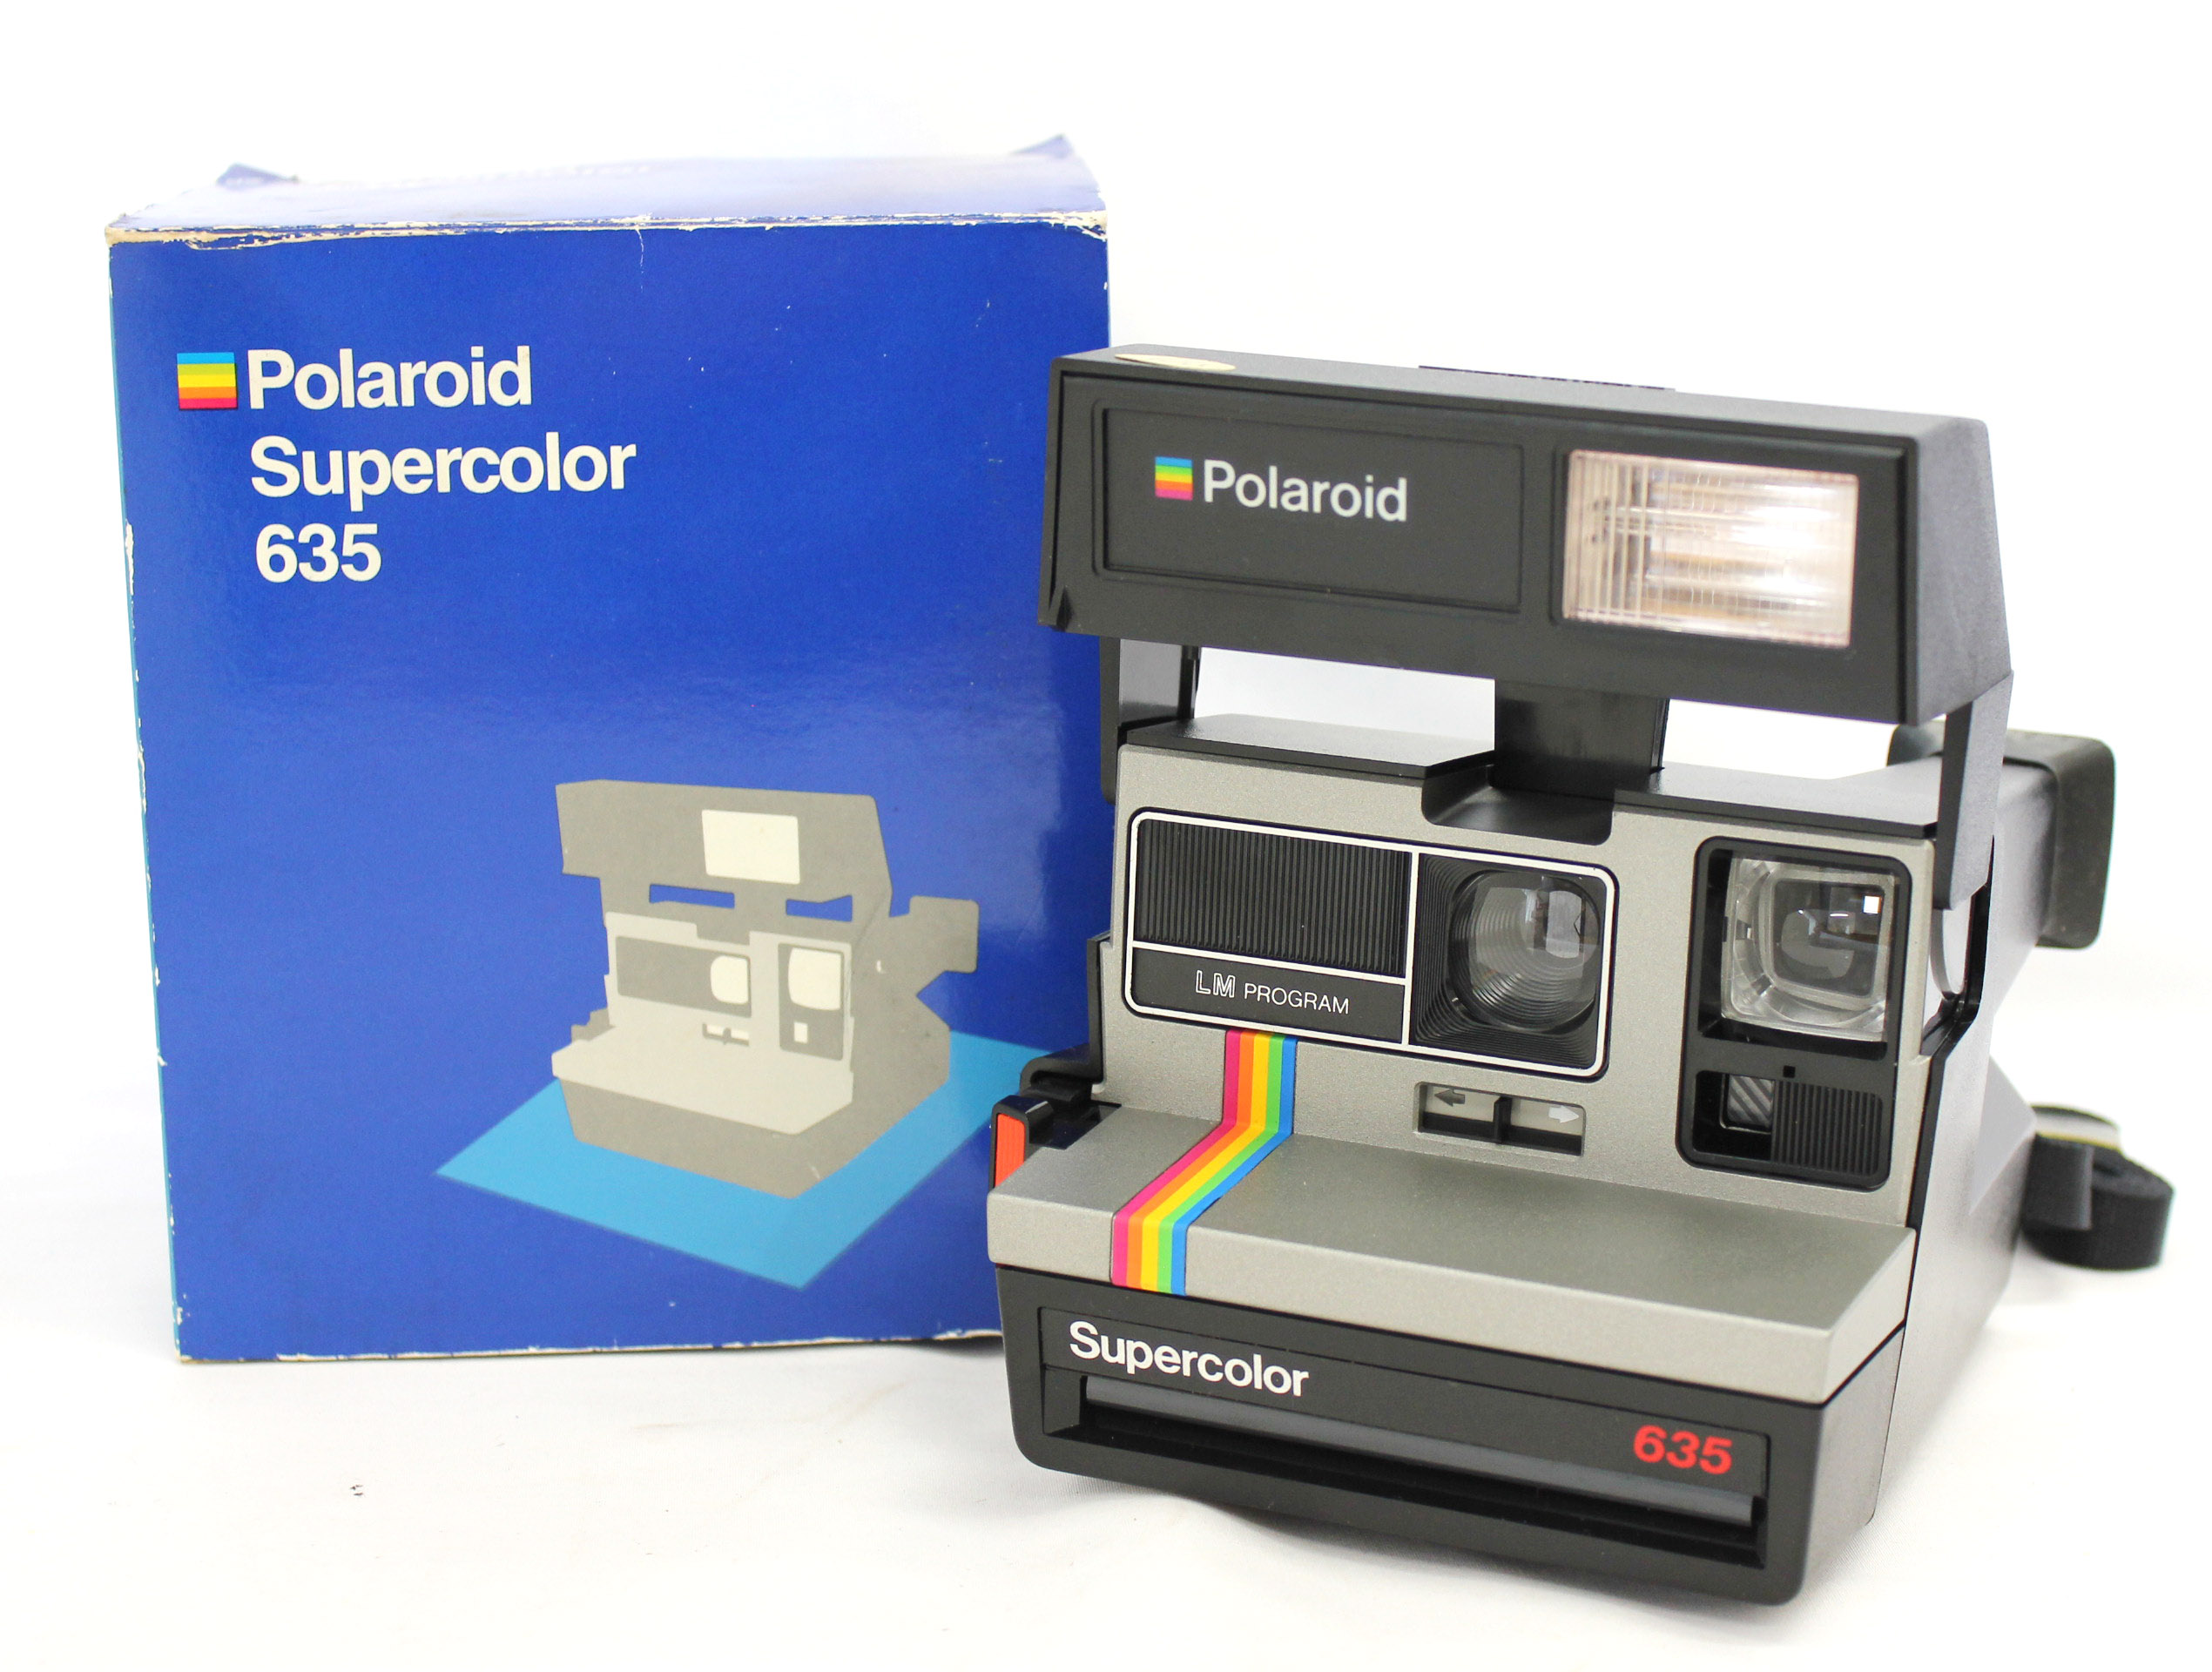 Japan Used Camera Shop | Polaroid Supercolor 635 LM Program (Tested) from Japan